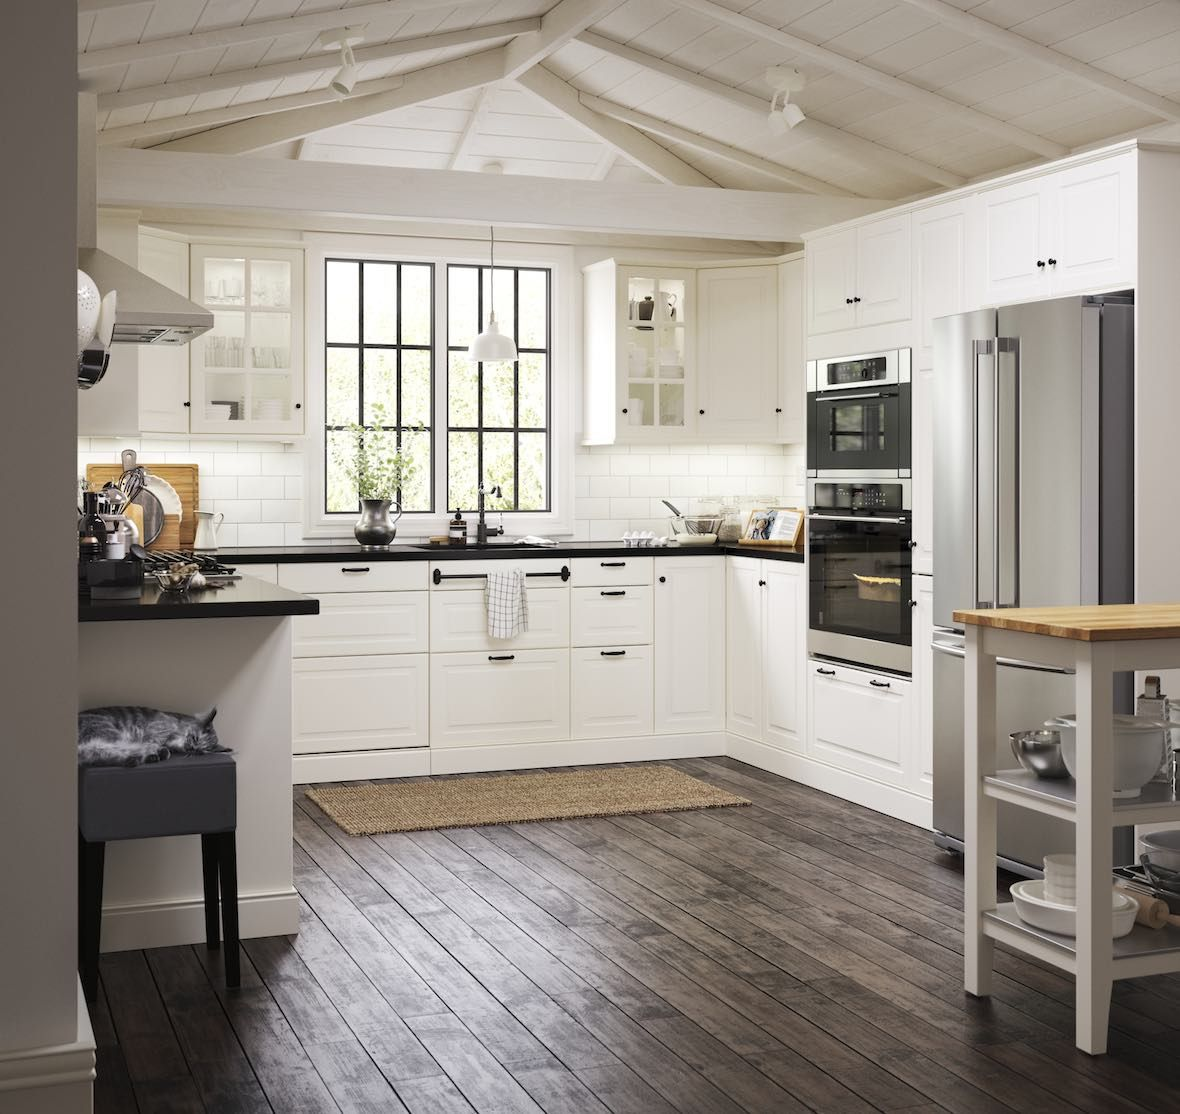 Best Image Result For Bodbyn Off White And Black Kitchen 400 x 300